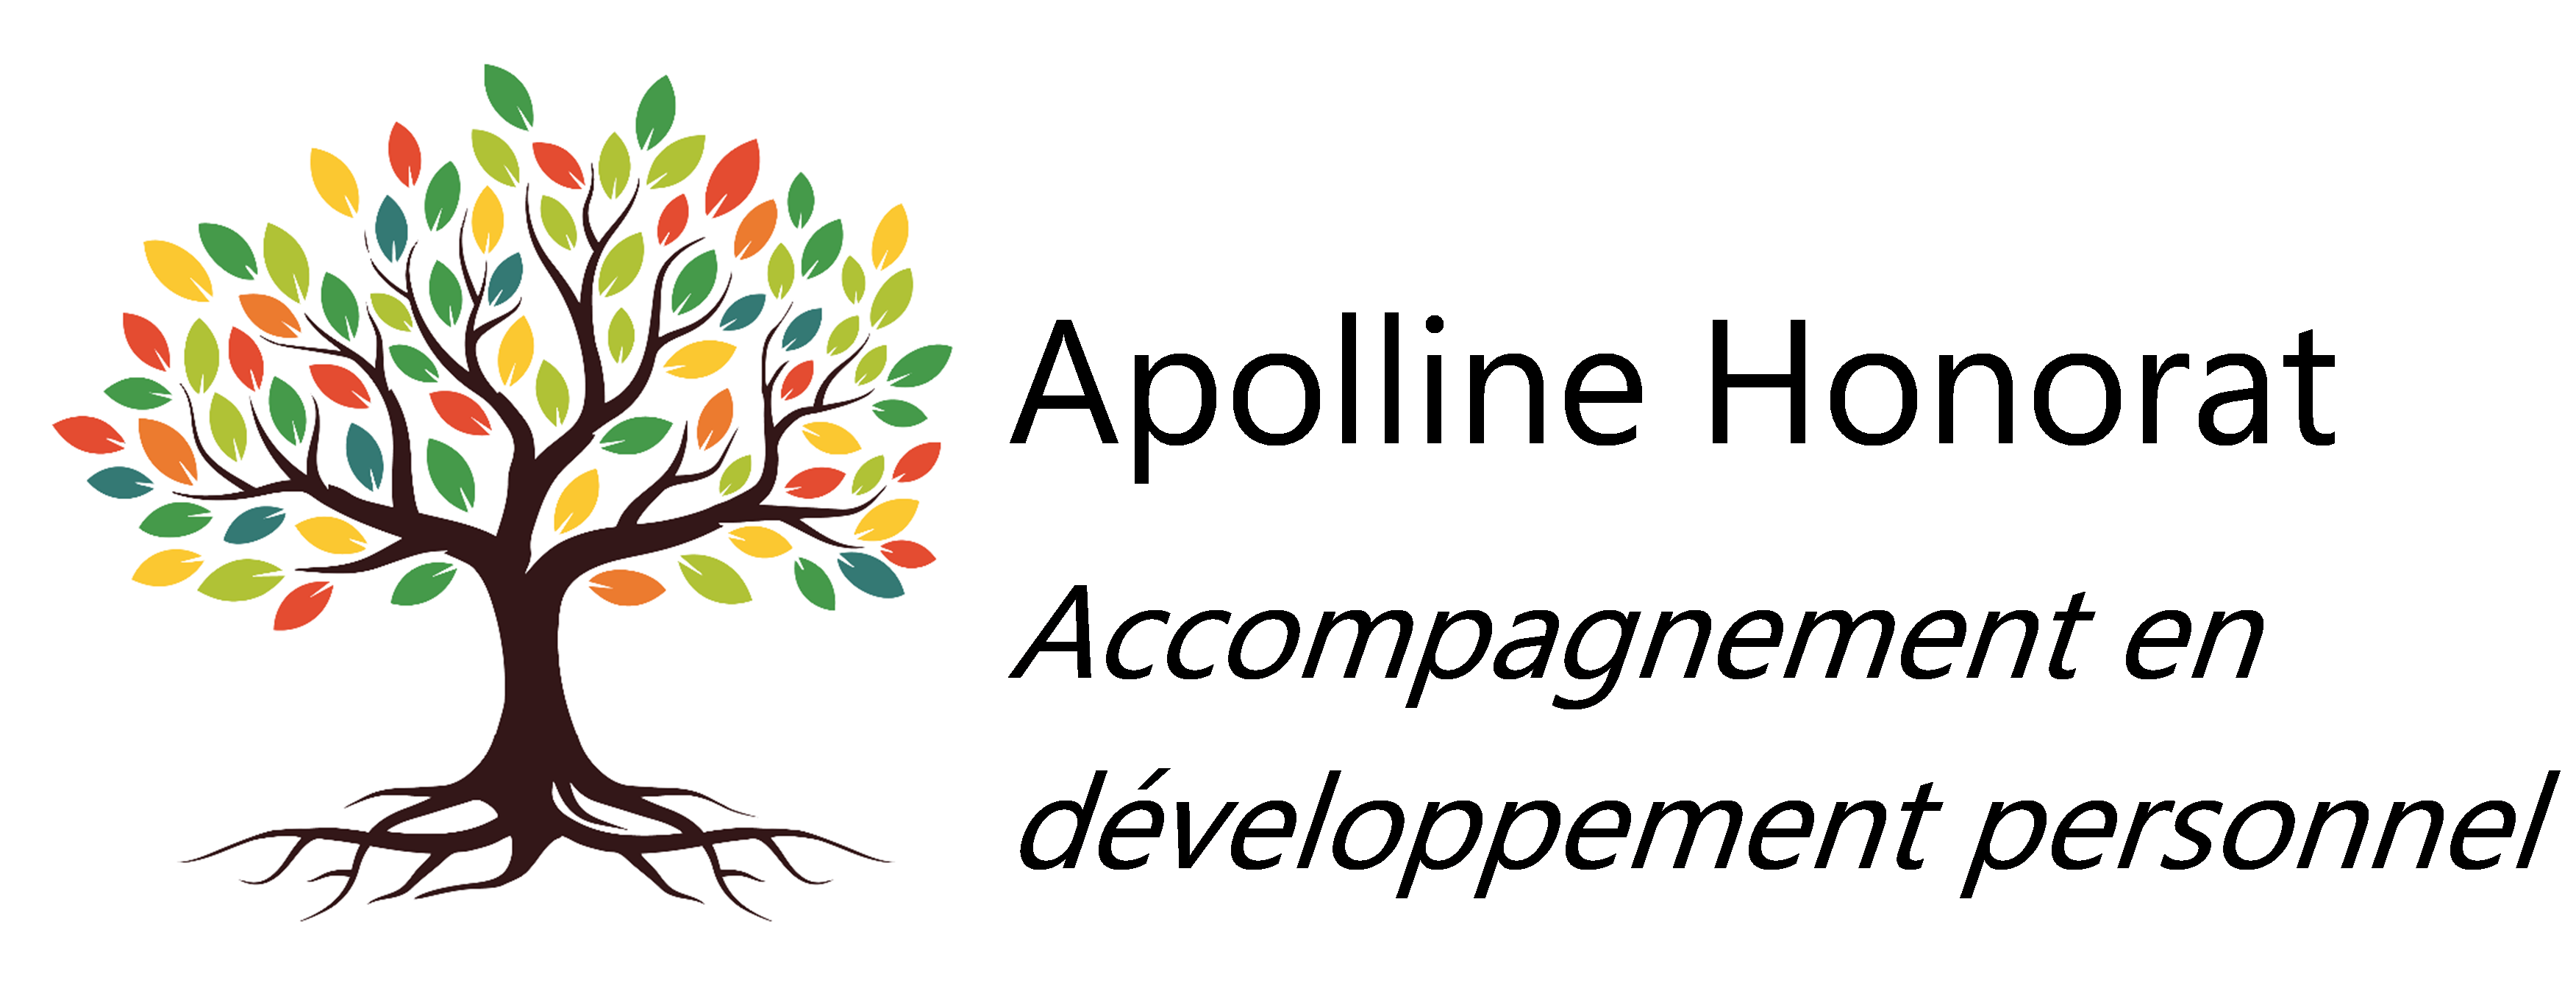 Apolline Honorat